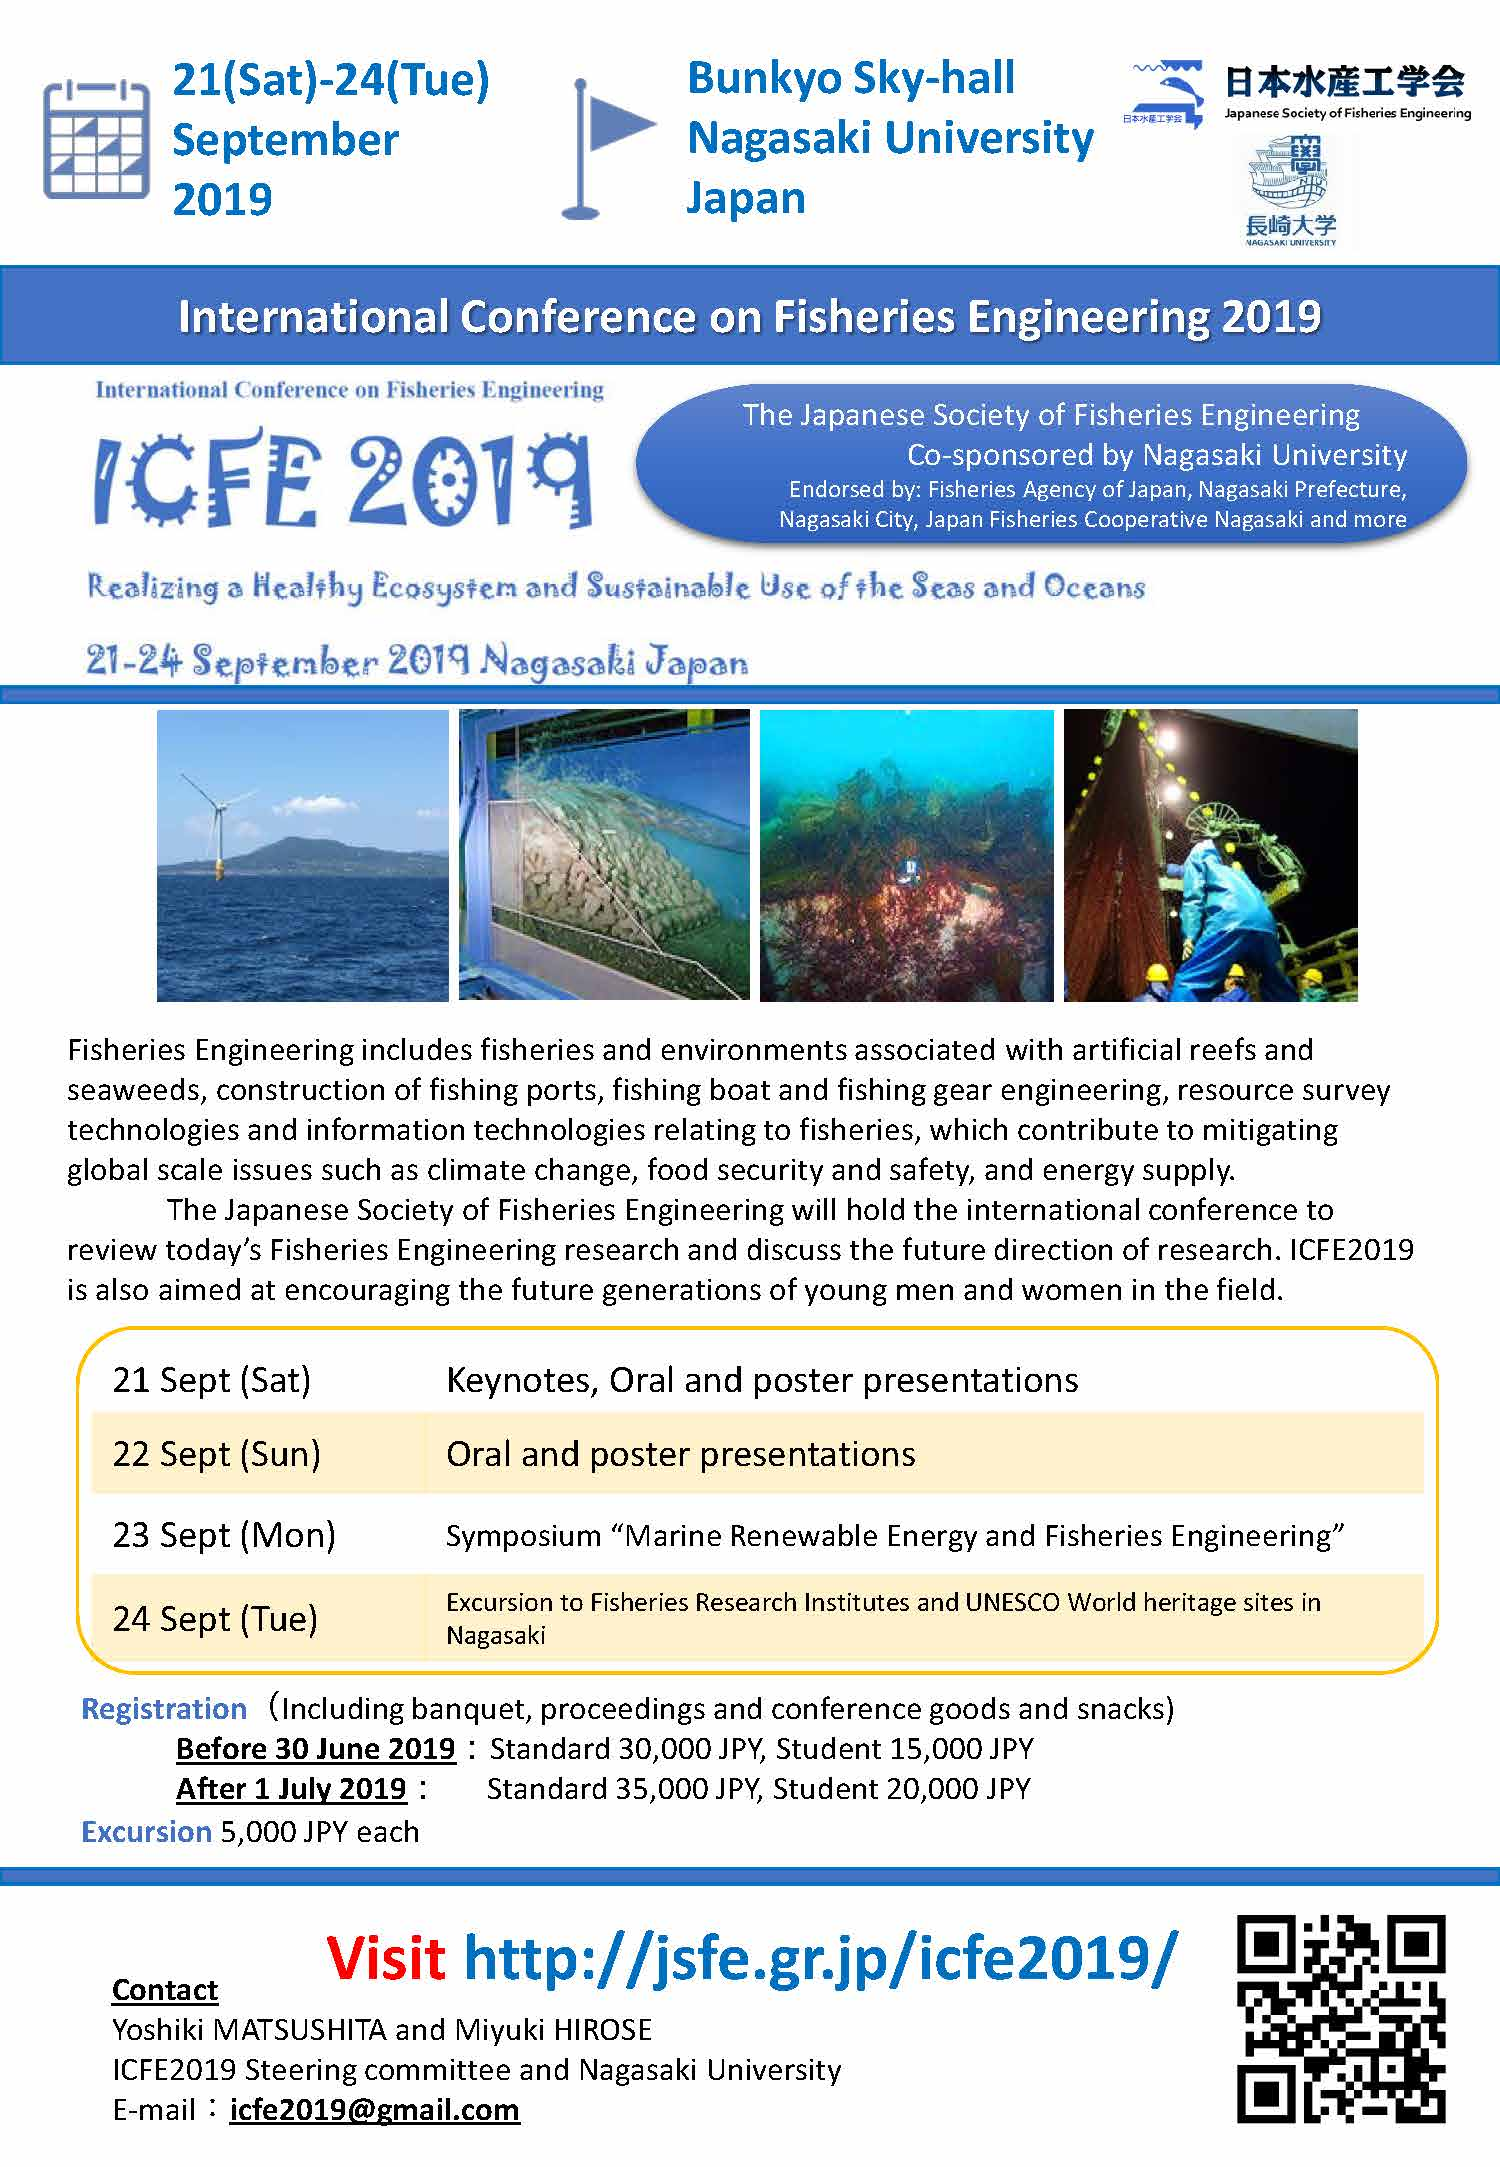 International Conference on Fisheries Engineering 2019